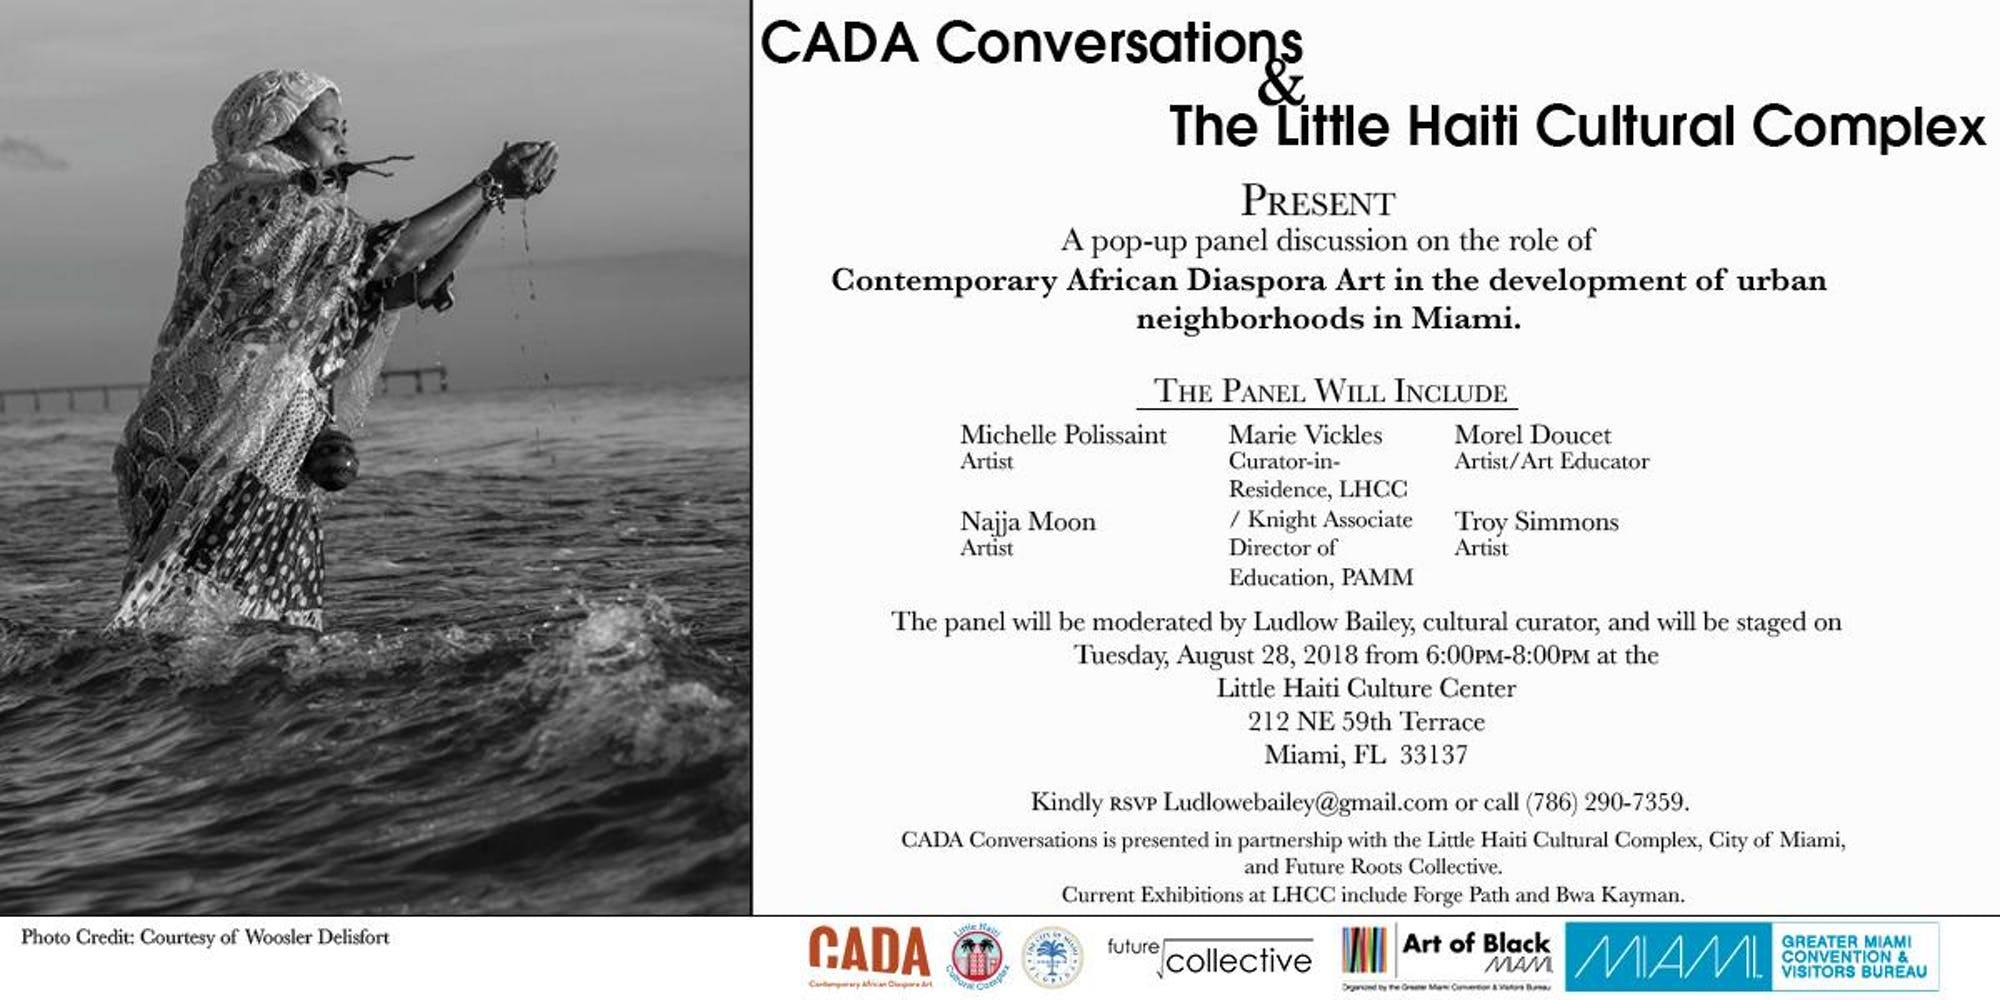 """DESCRIPTION  The Art of Black Miami is a multi-media platform created by the Greater Miami Convention and Visitors bureau designed to promote the growing black visual arts presence in Miami Dade County.  G&A International Consultants, Inc and CADA Conversations have developed a series of pop-up panel discussions to highlight some of the important issues concerning the growth, media coverage, community engagement and promotion of the burgeoning black visual arts sector in Dade since the inception of Art Basel Miami Beach. The fourth series will convene on Tuesday, August 28, 2018, at the Little Haiti Cultural Center from 6:00pm-8: 00 pm at 212 NE 59th Terrace Miami, FL 33137. The conversation will focus on the """"the role of Contemporary African Diaspora Art in the development of urban neighborhoods in Miami.  The panel will include artist/art educator, Morel Doucet; Associate Director of Education, the Perez Art Museum Miami, Marie Vickles; cultural curator, Najja Moon; artist, Michelle Polissaint and artist, Troy Simmons.  The panel will be moderated by cultural curator, Ludlow Bailey. ( www.cadaonline.us ) Light refreshments will be served. Kindly RSVP Ludlowebailey@gmail.com  or call 786 290-7359.   CADA Conversations is presented in partnership with the Little Haiti Cultural Complex - the City of Miami and Future Roots Collective   Current Exhibitions at the LHCC include Forge Paths and Bwa Kayman"""